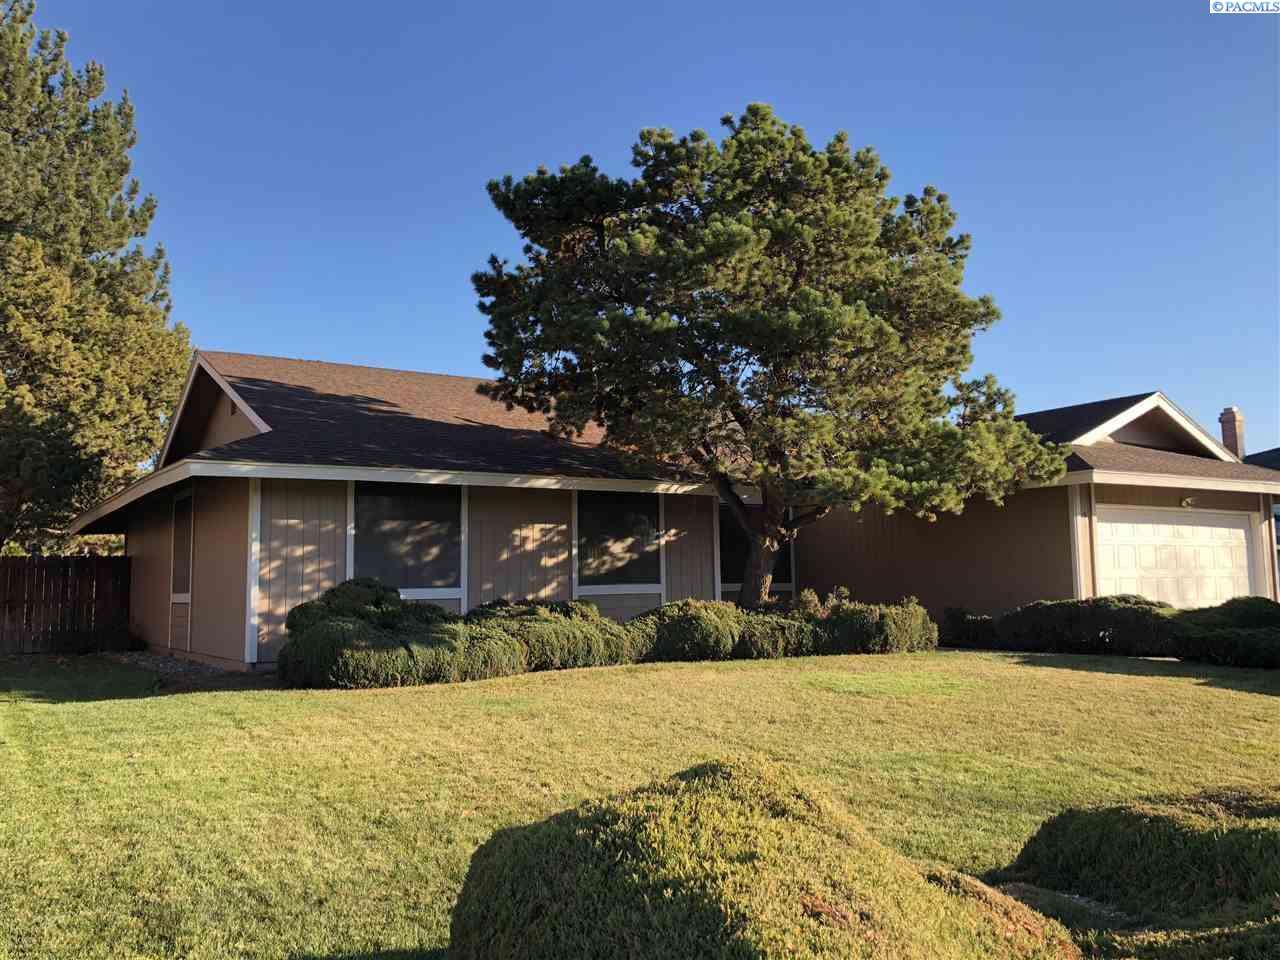 Single Family Home for Sale at 517 Doubletree Court 517 Doubletree Court Richland, Washington 99354 United States